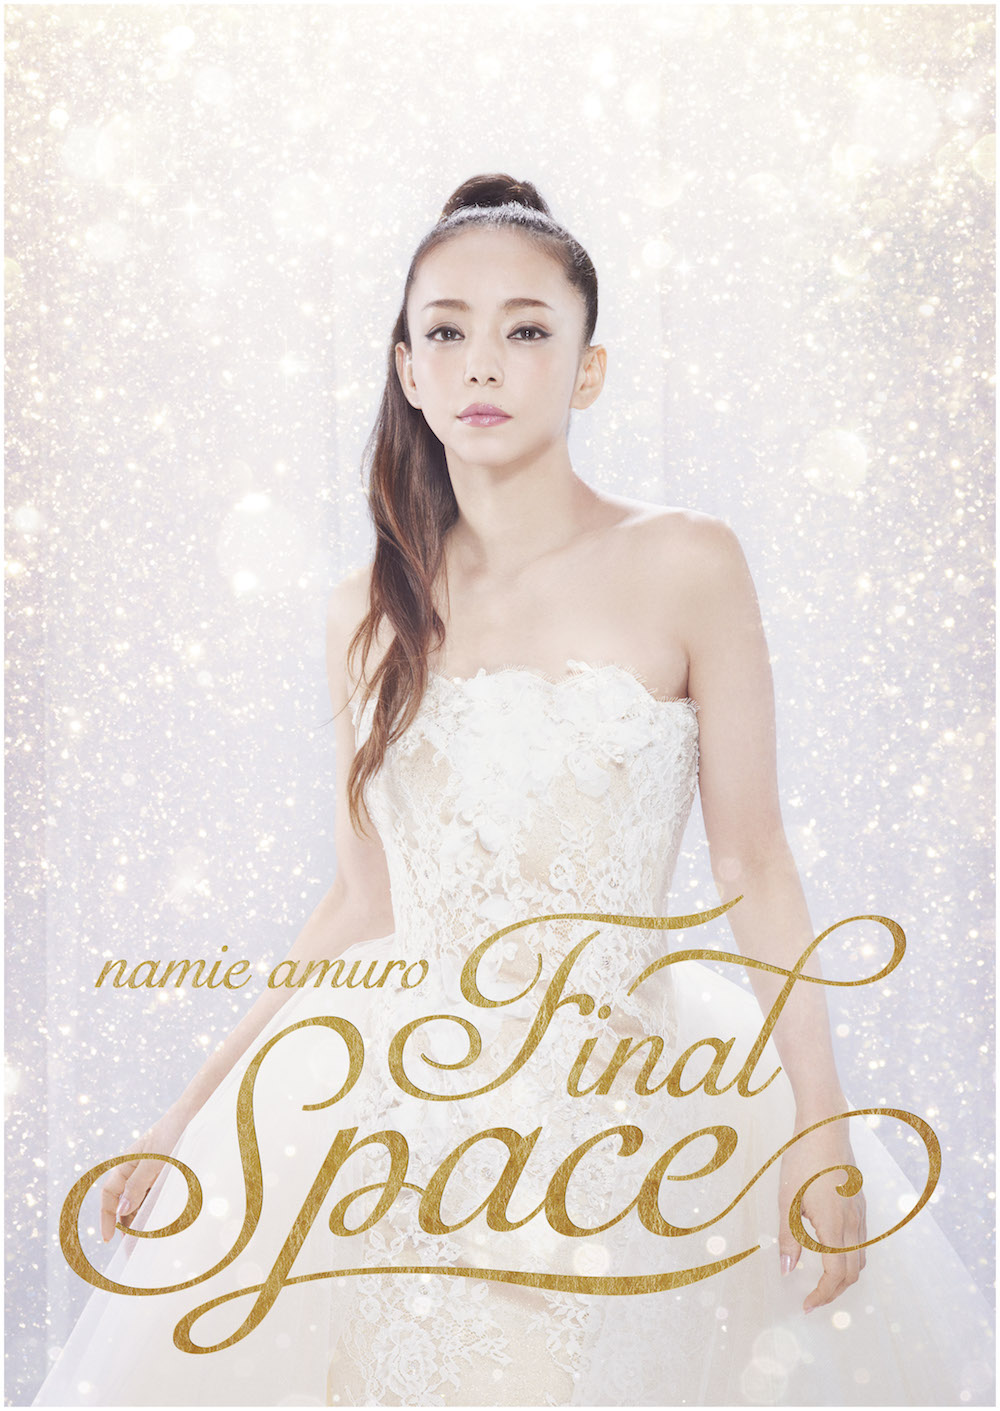 安室奈美恵 namie amuro Final Space